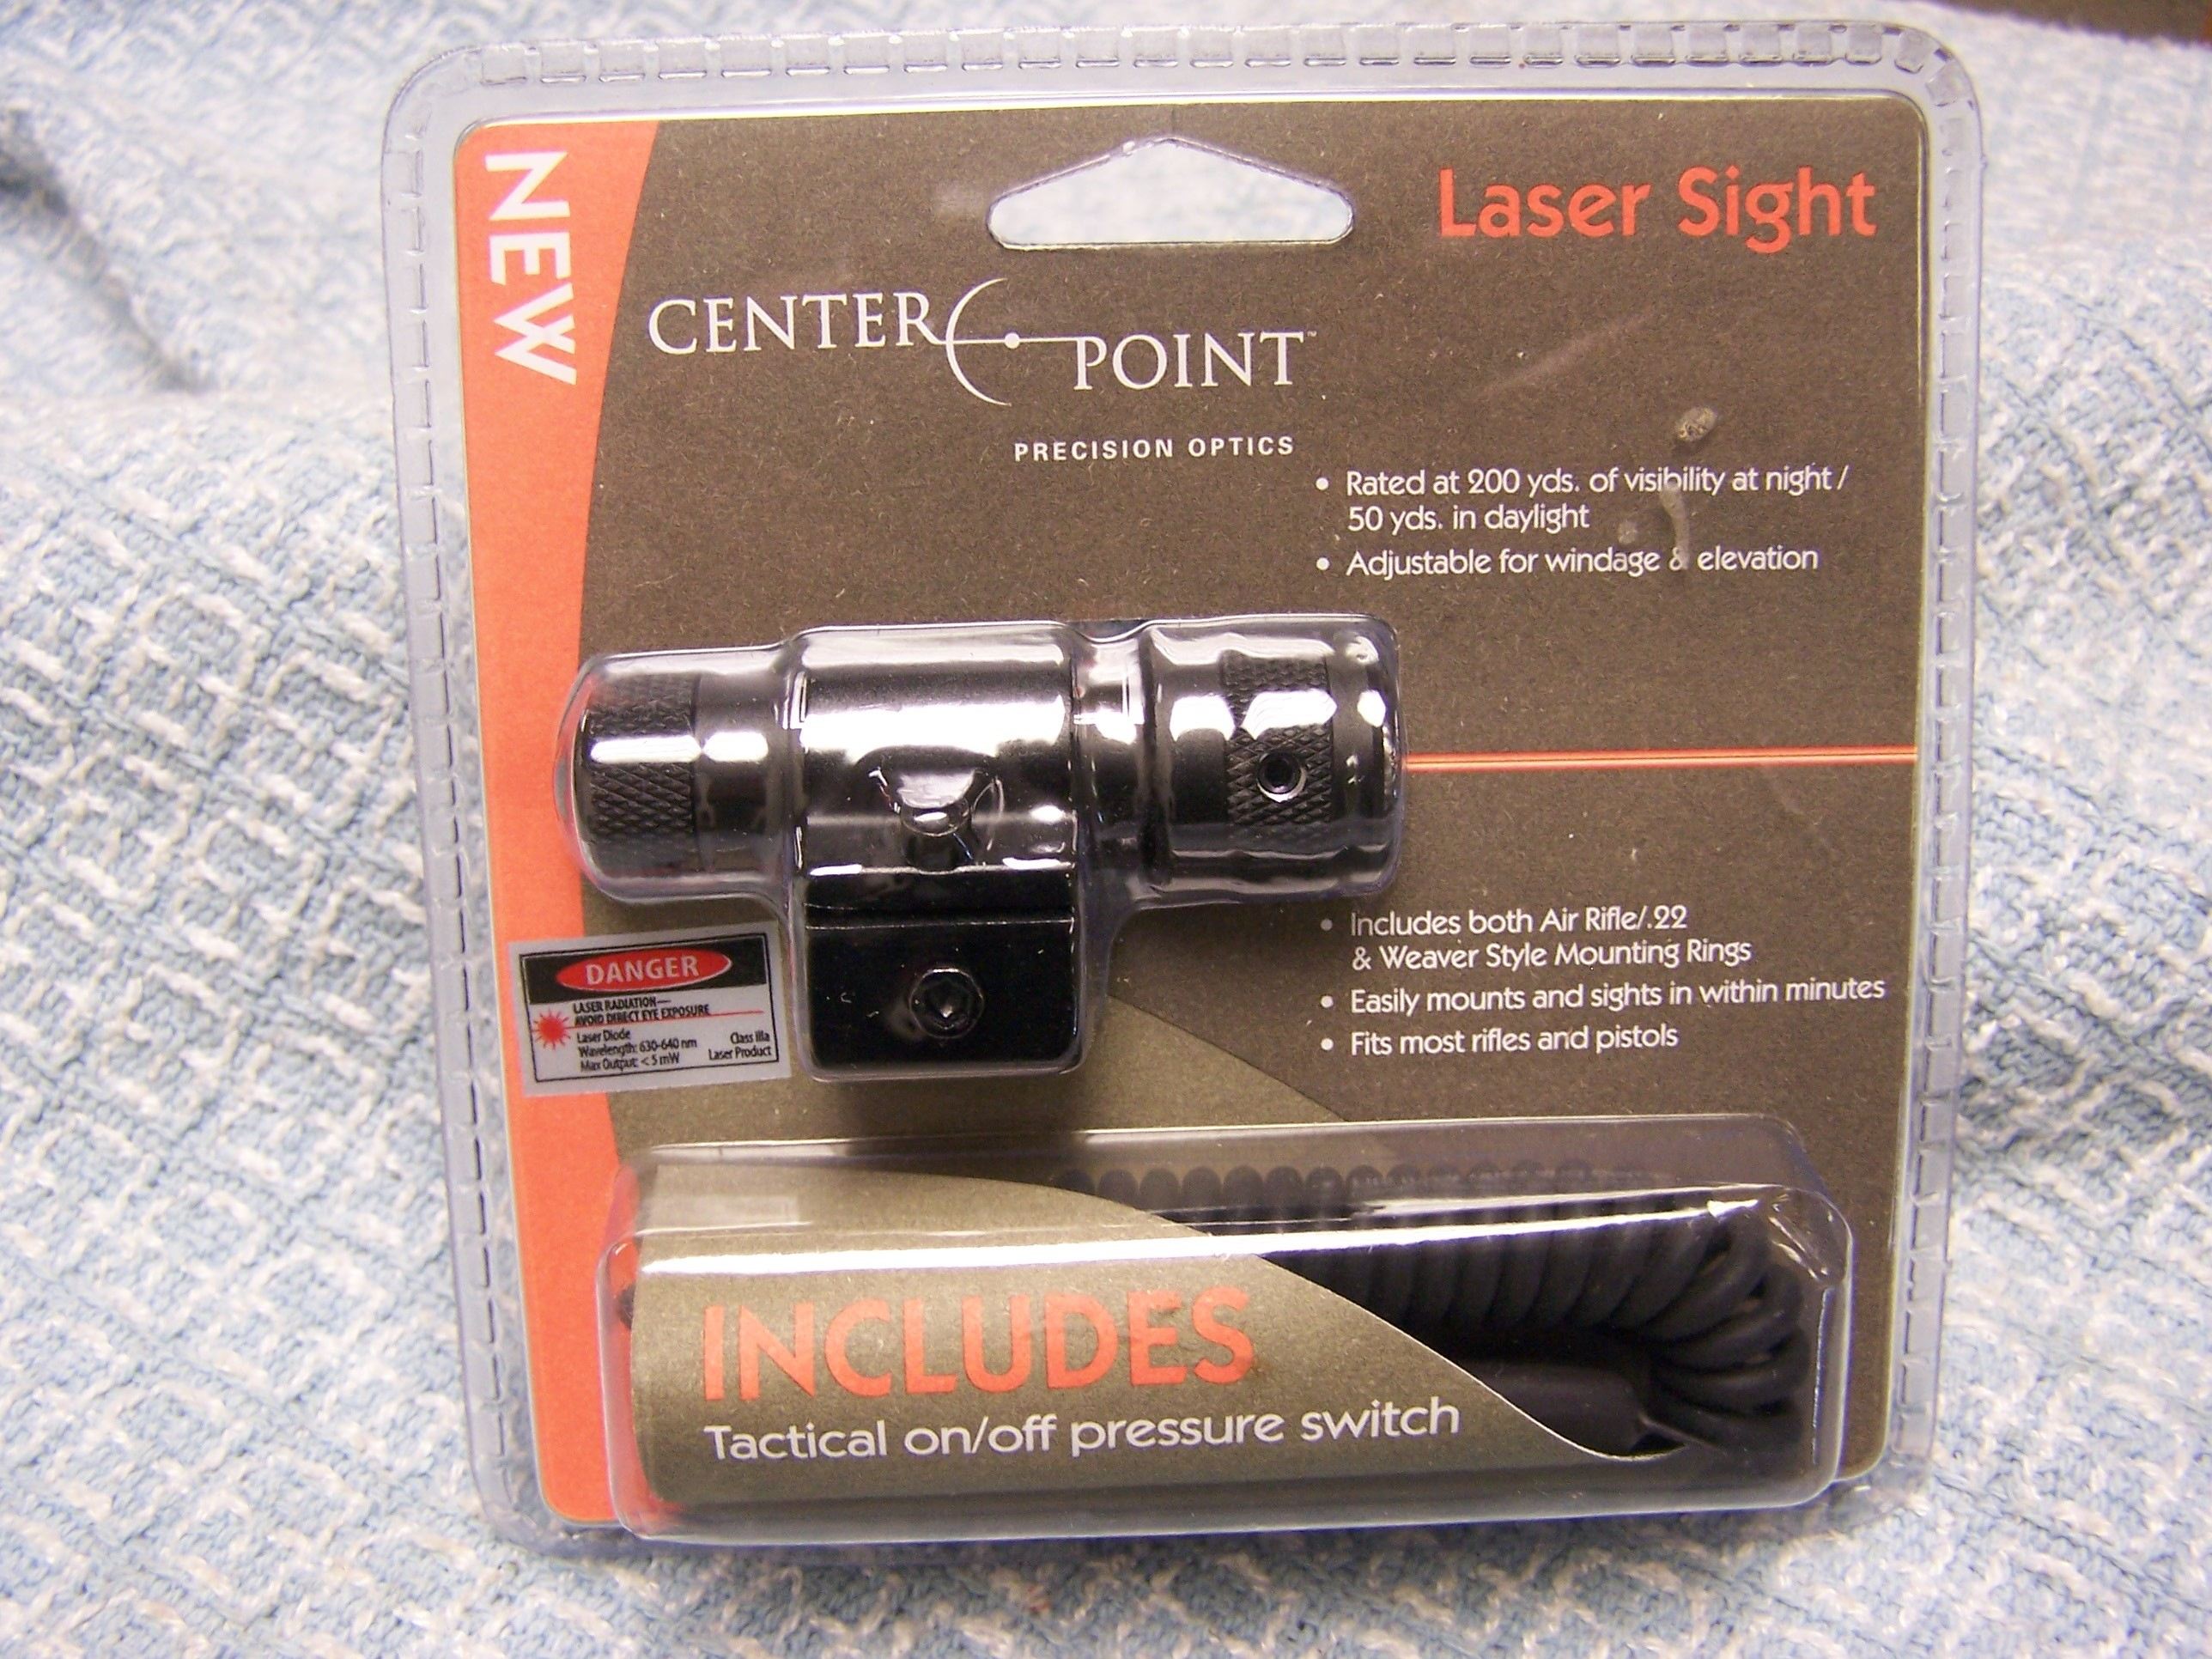 CENTERPOINT LASER SIGHT W/TACTICAL PRESSURE SWITCH